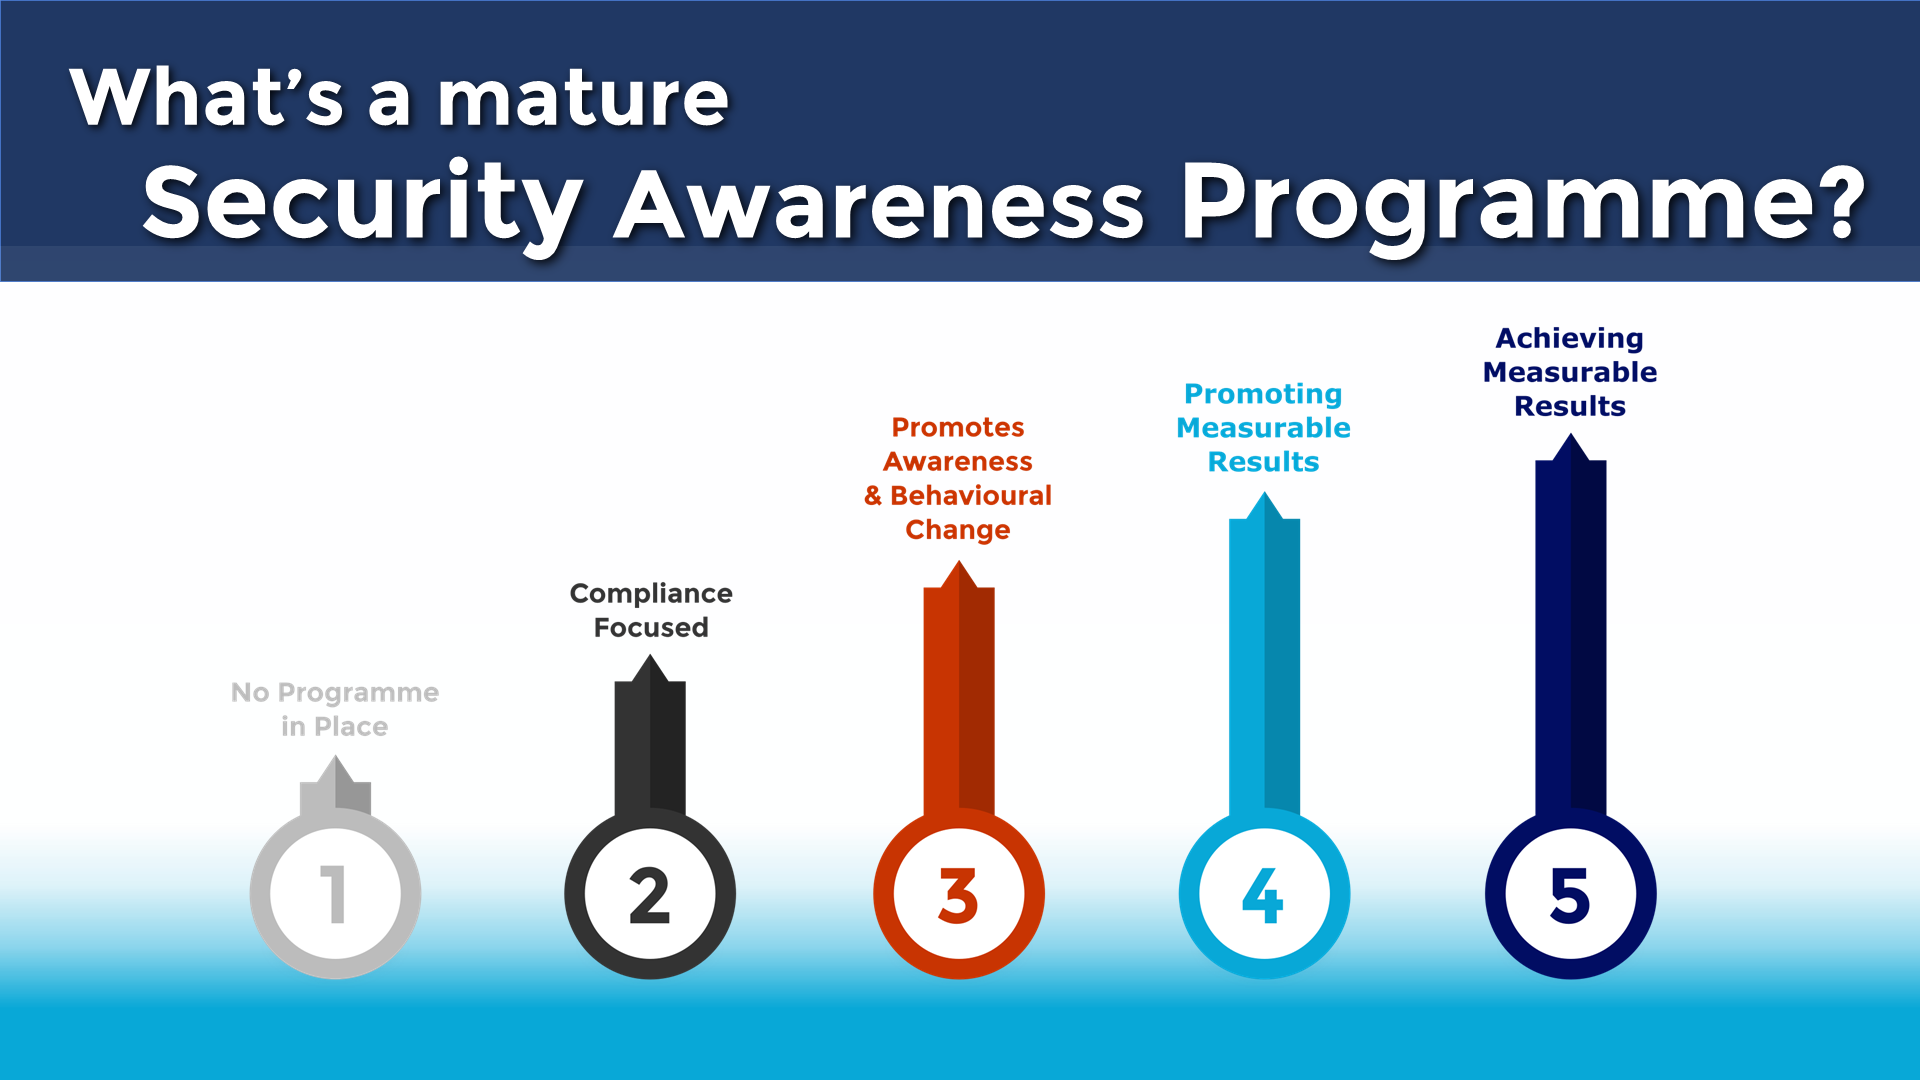 Security Awareness Programme